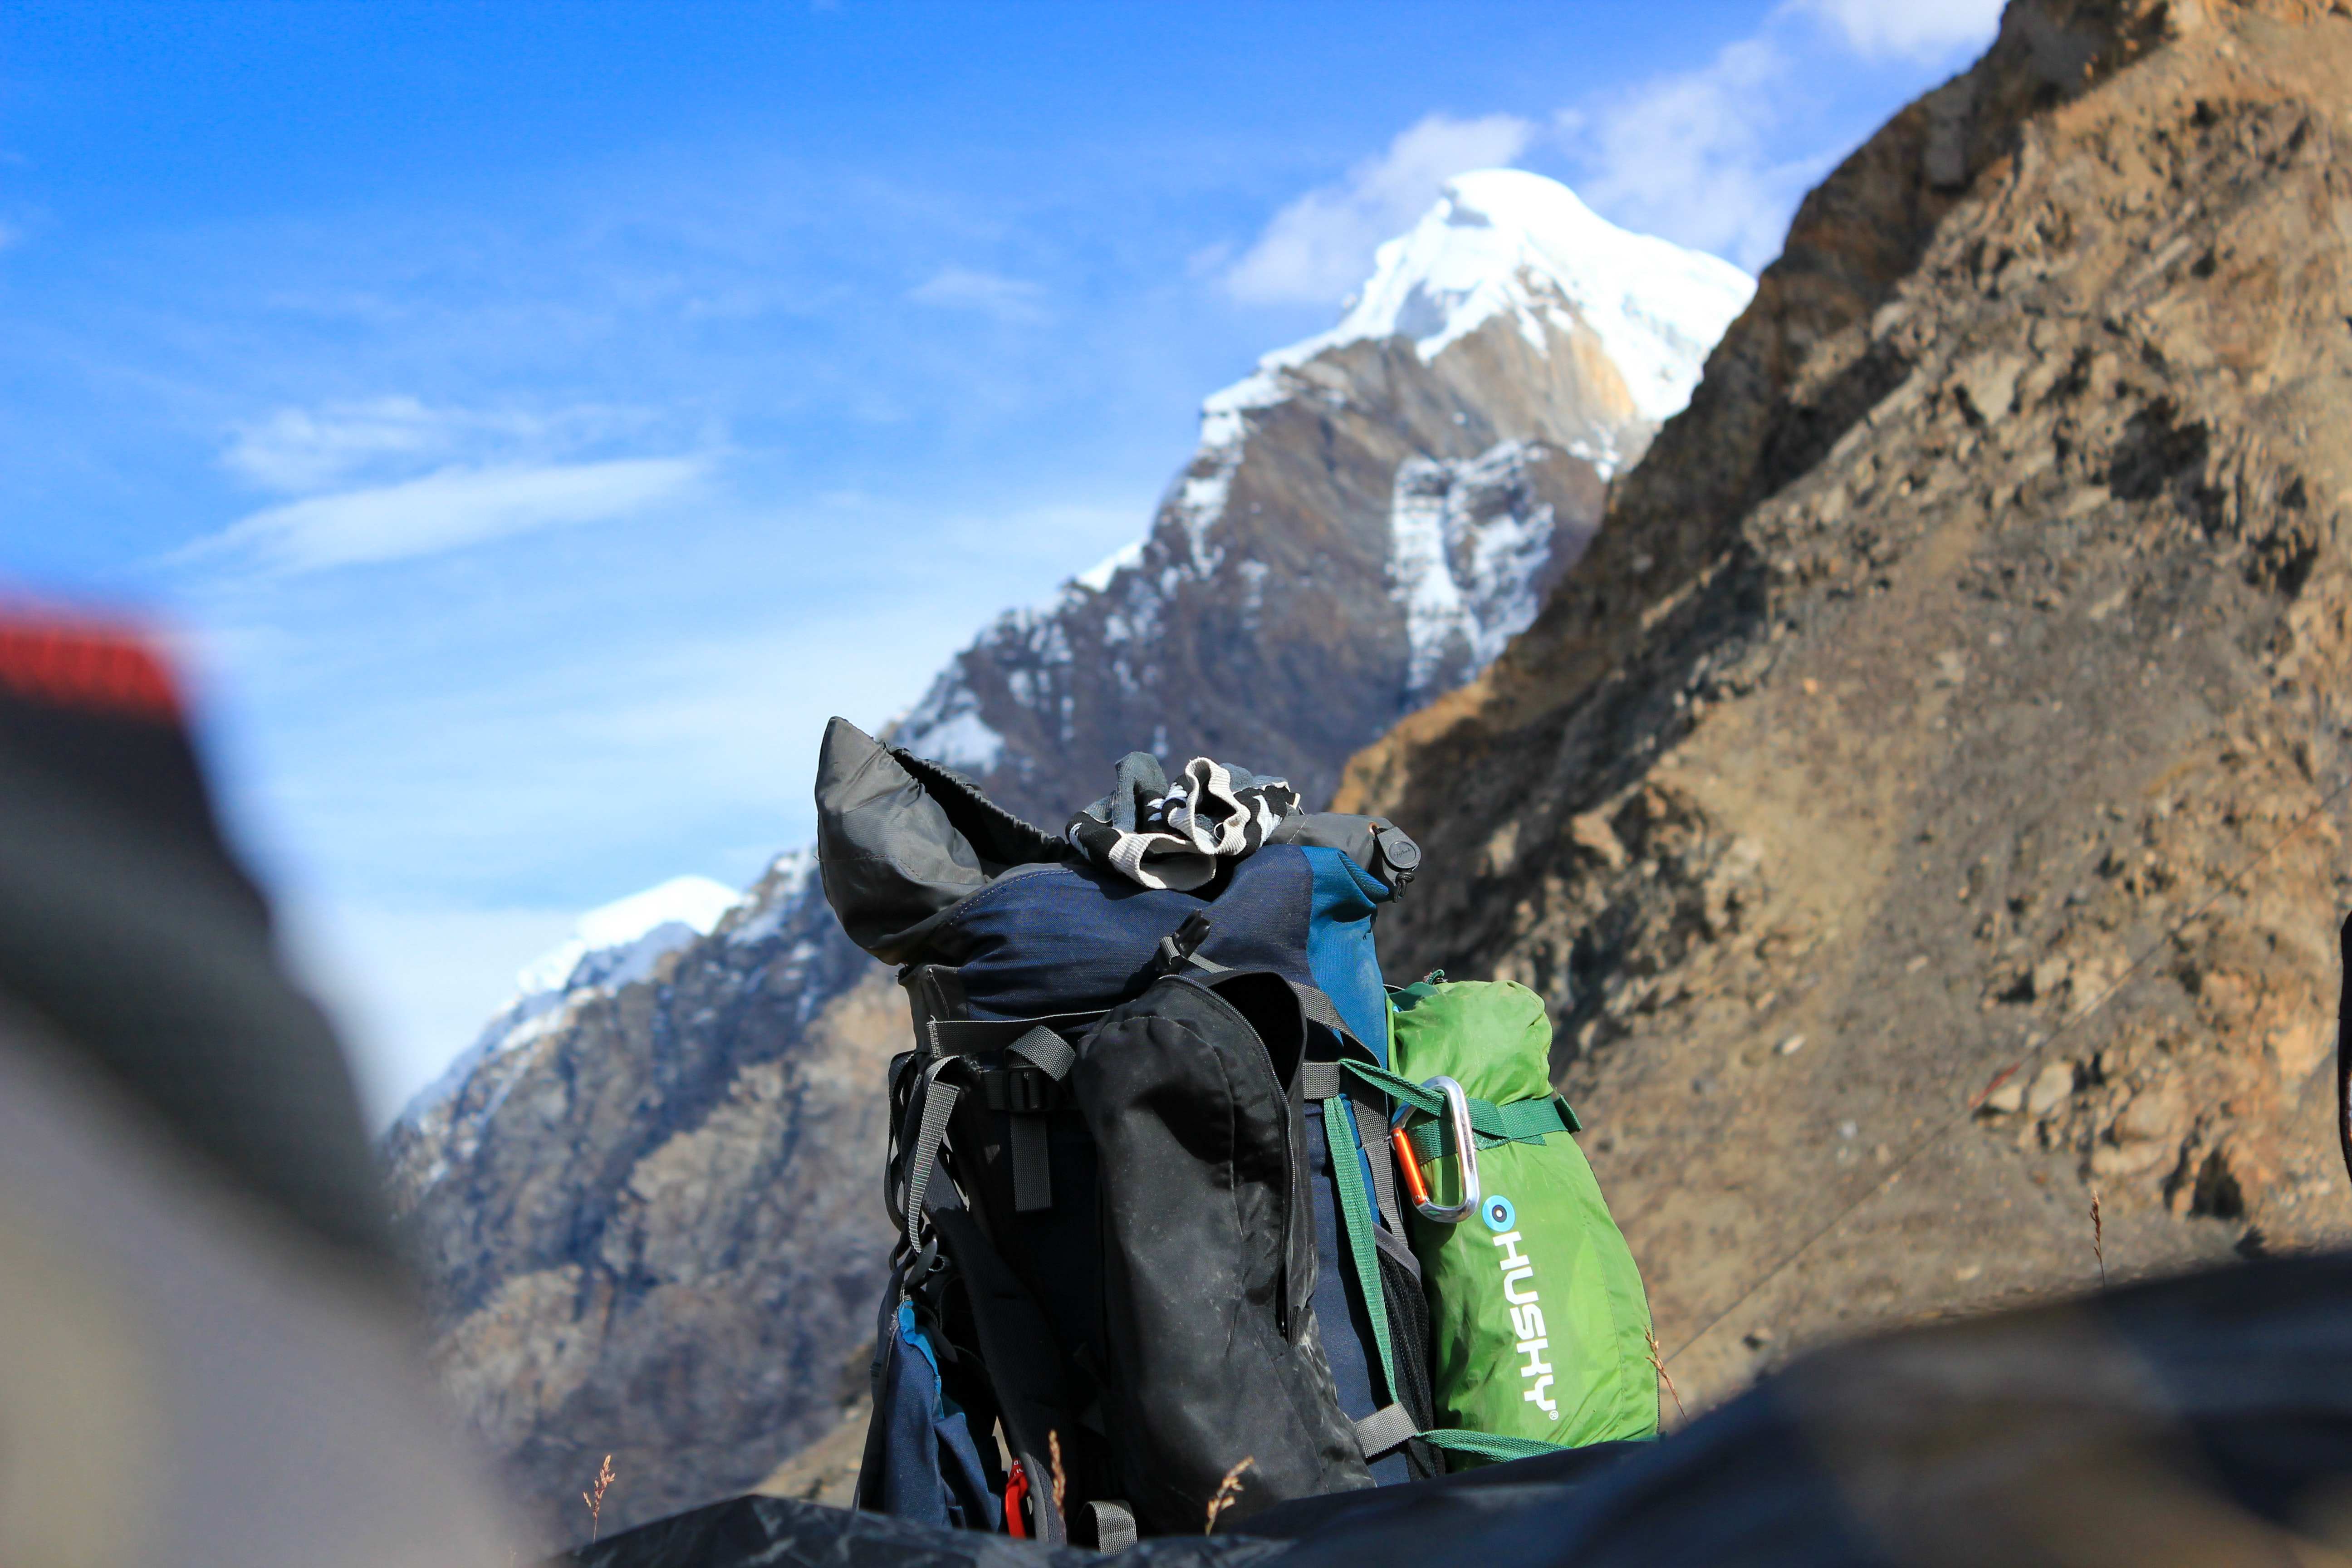 black and green travel backpack near mountain at daytime